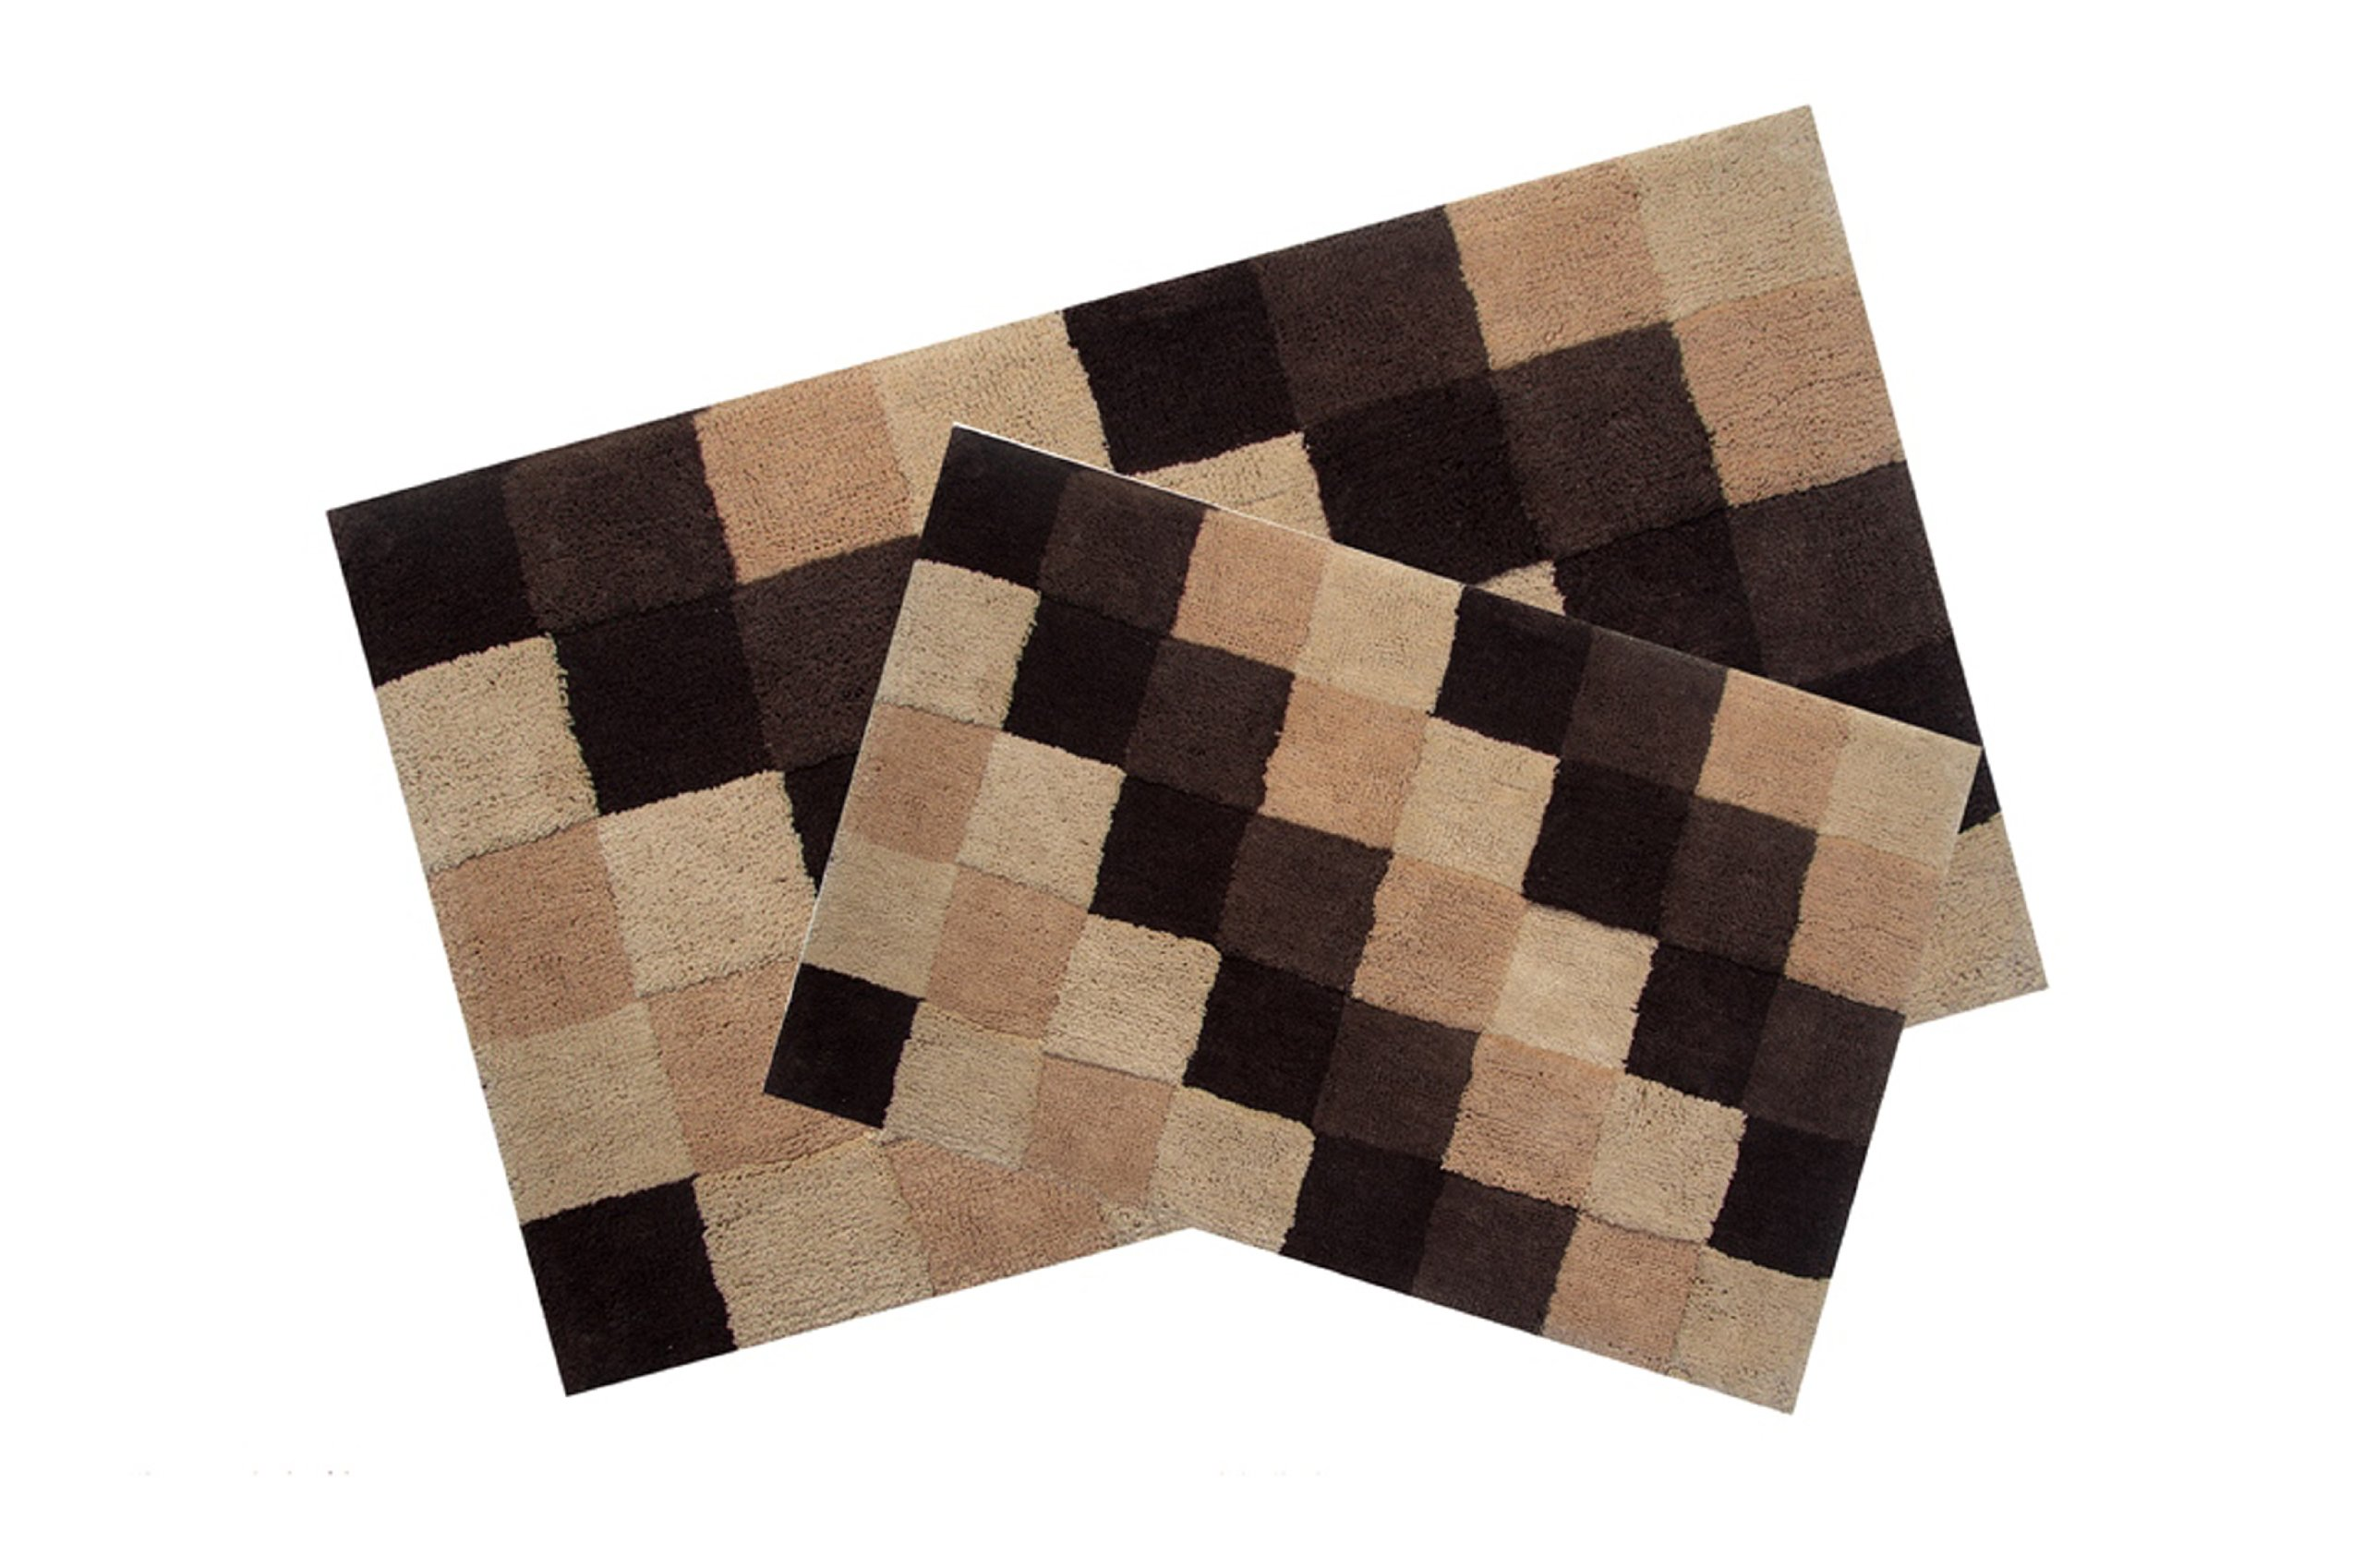 Better Trends / Pan Overseas Tiles 160 GSF 100-Percent Cotton 2-Piece Luxury Tufted Bath Rug Set, 24 by 40-Inch/17 by 24-Inch, Brown